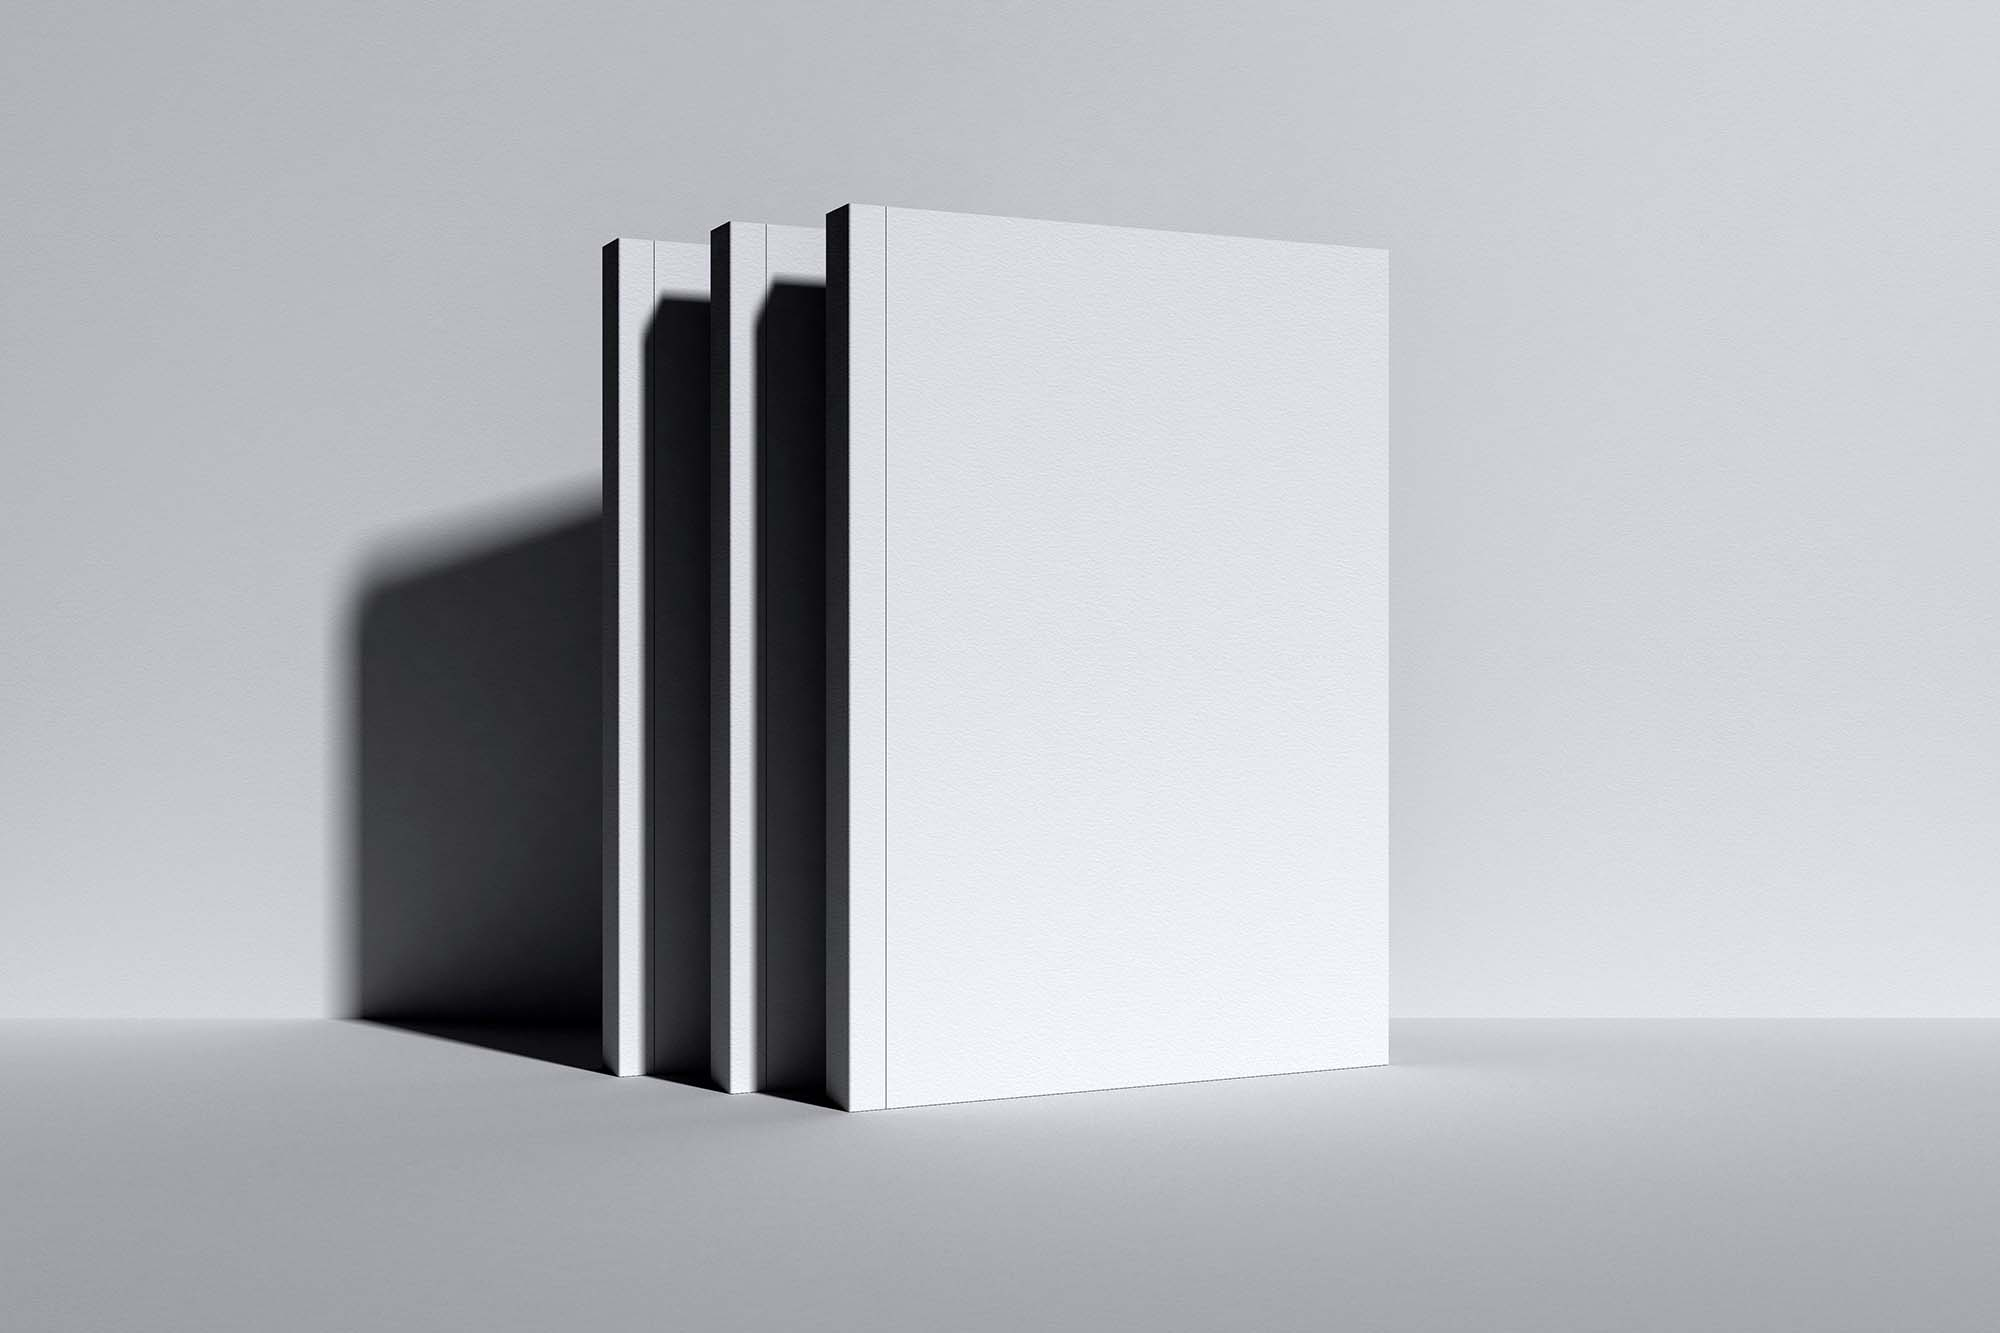 Upright Standing Books Mockup 2